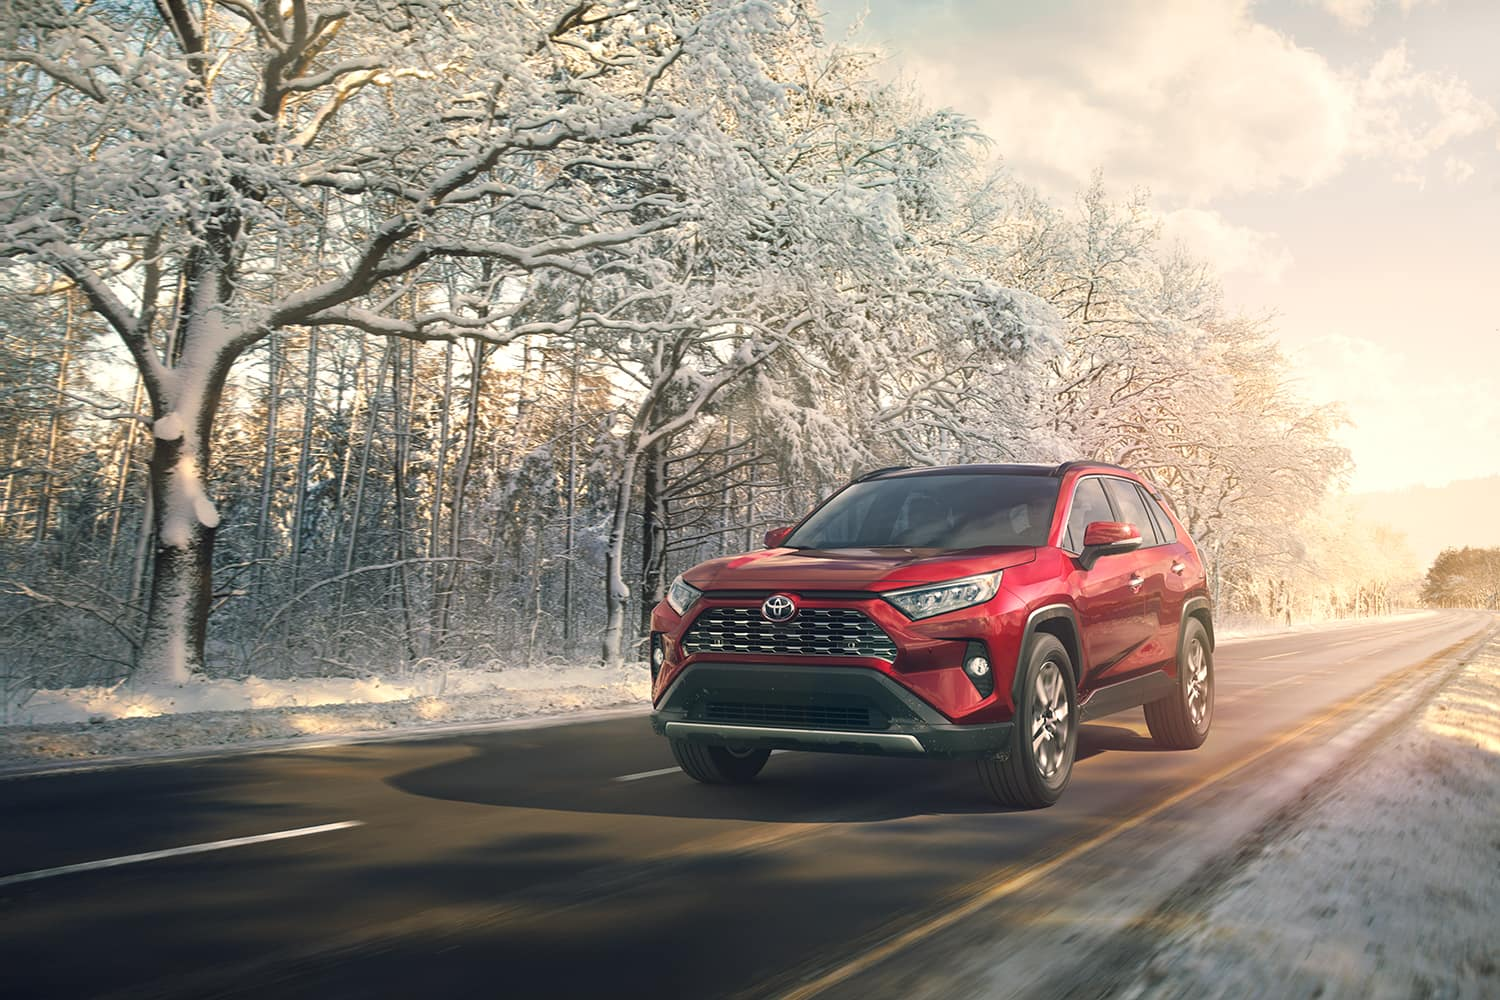 All-New 2019 RAV4 driving on a Winter Road